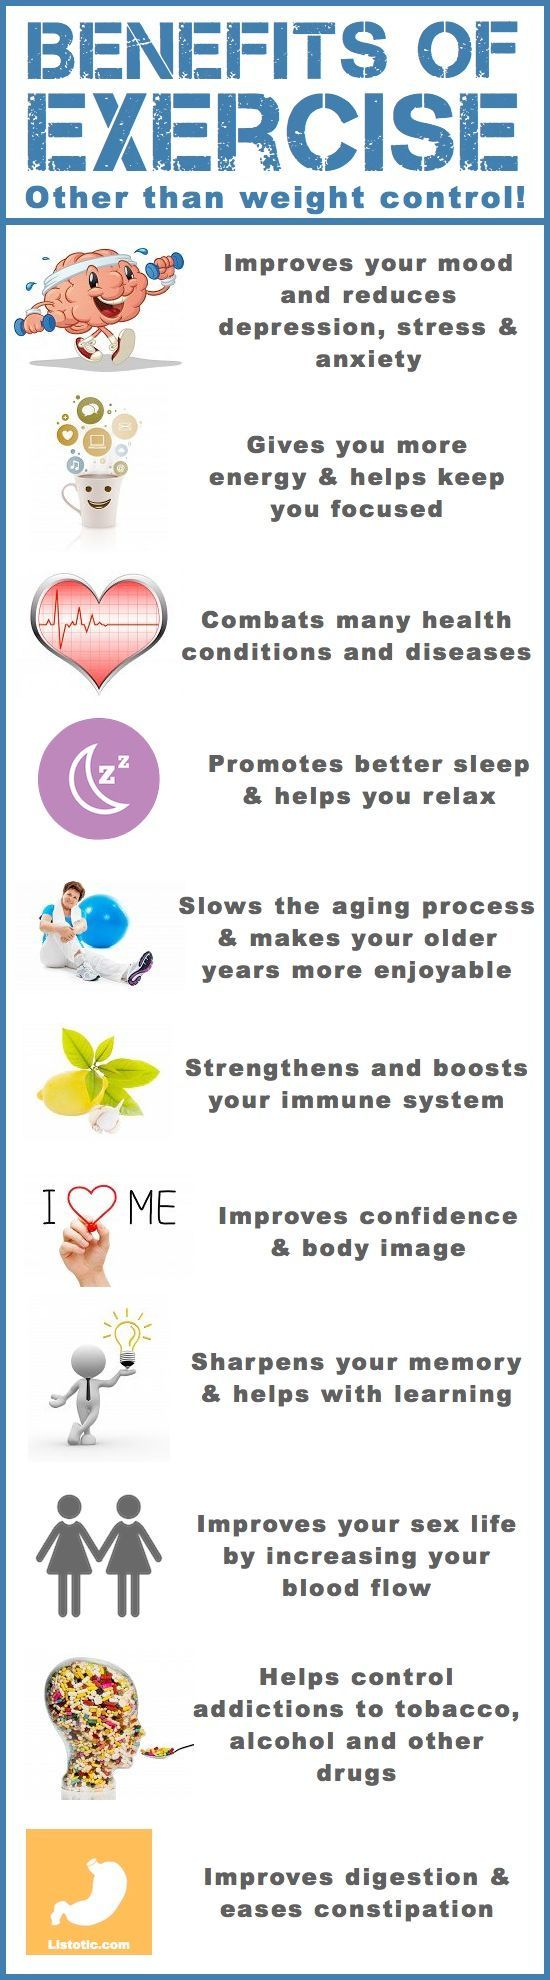 Benefits Of Exercise Other Than Weight Control - Infographic